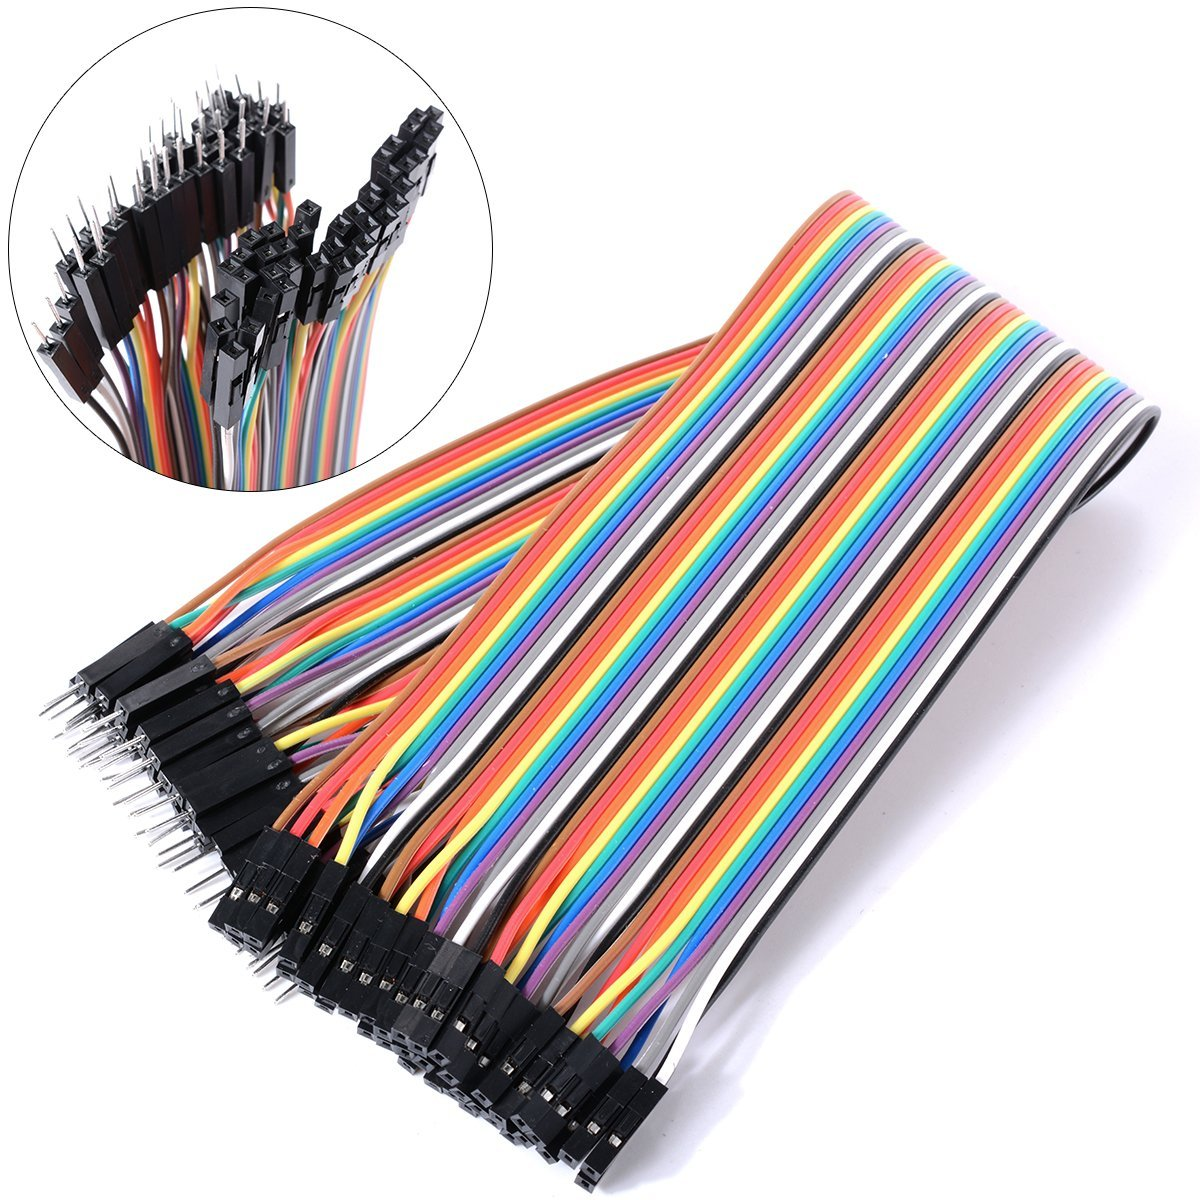 40pc Dupont Wire Jumper Cable 1P-1P 2.54mm female to Female length 20cm